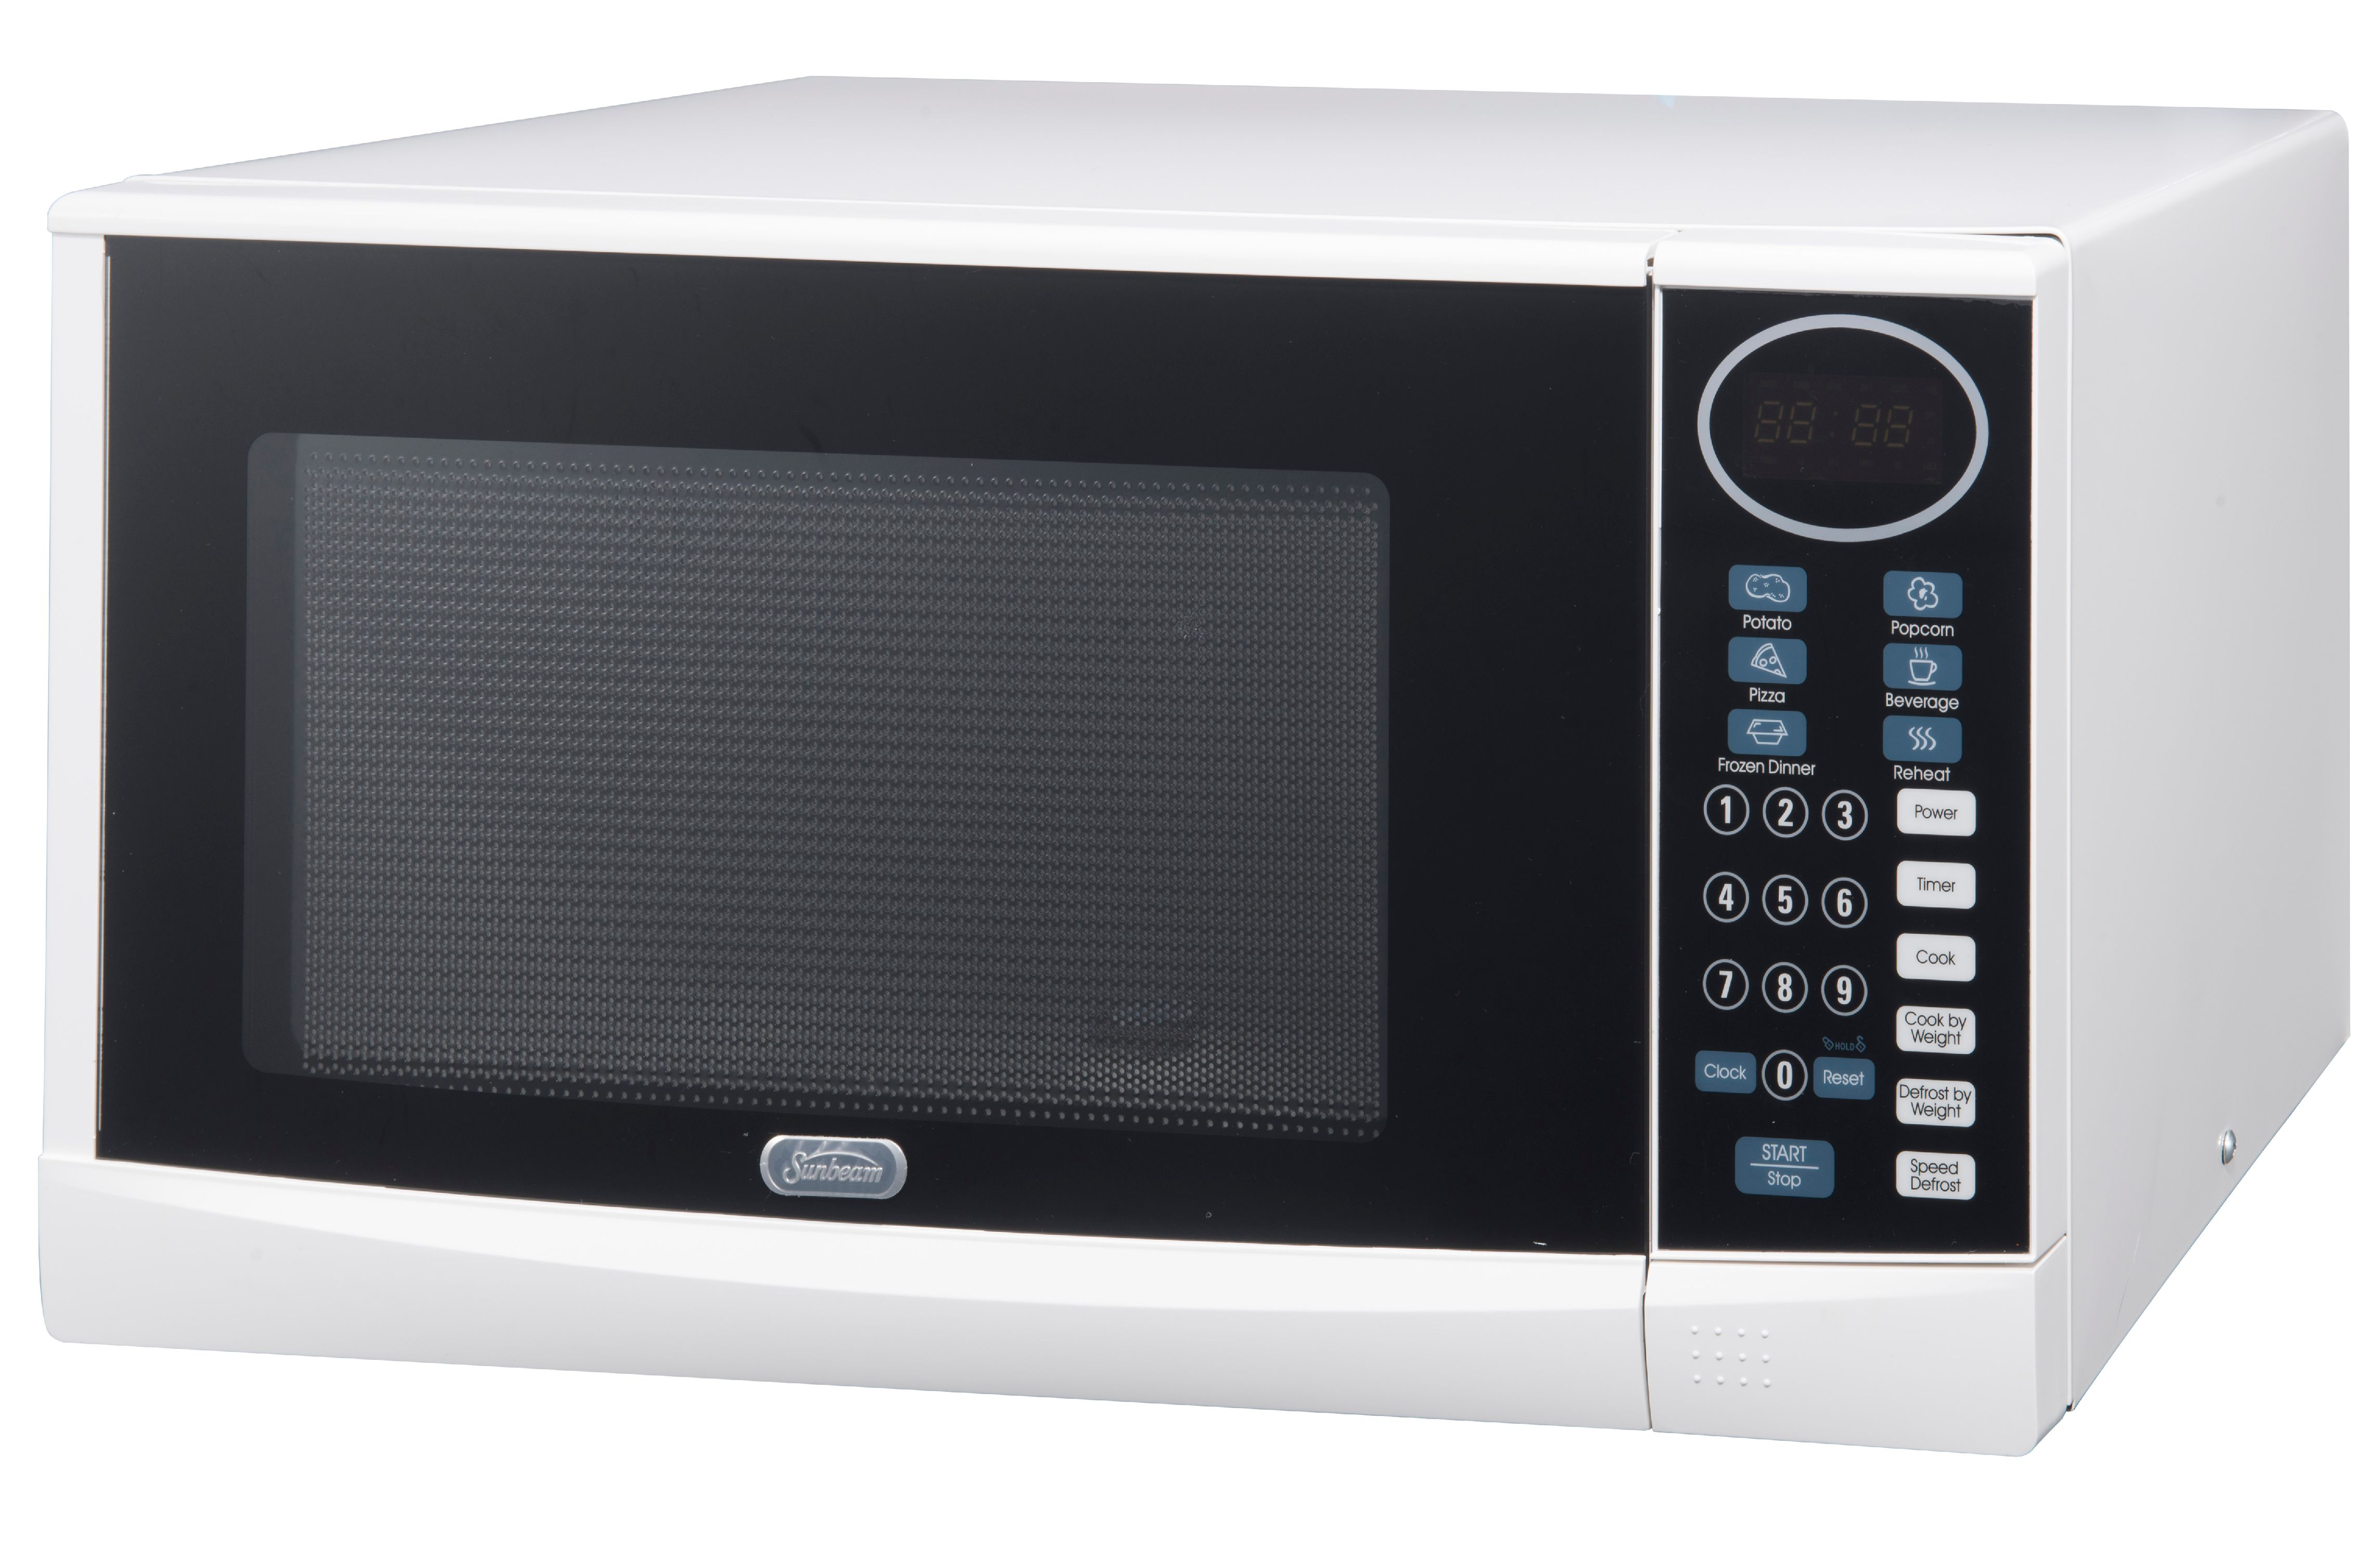 emerson stainless steel 1 1 cu ft